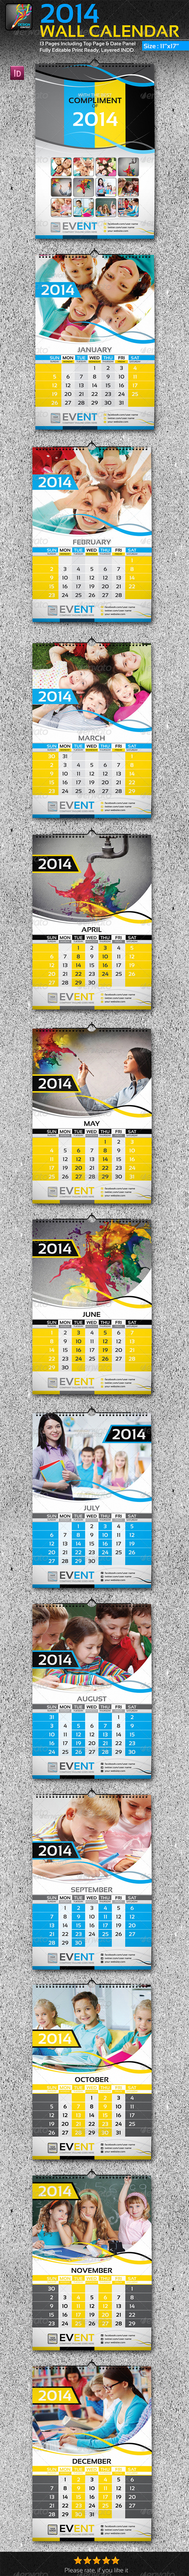 GraphicRiver 2014 Wall Calendar 13 Pages 5950825